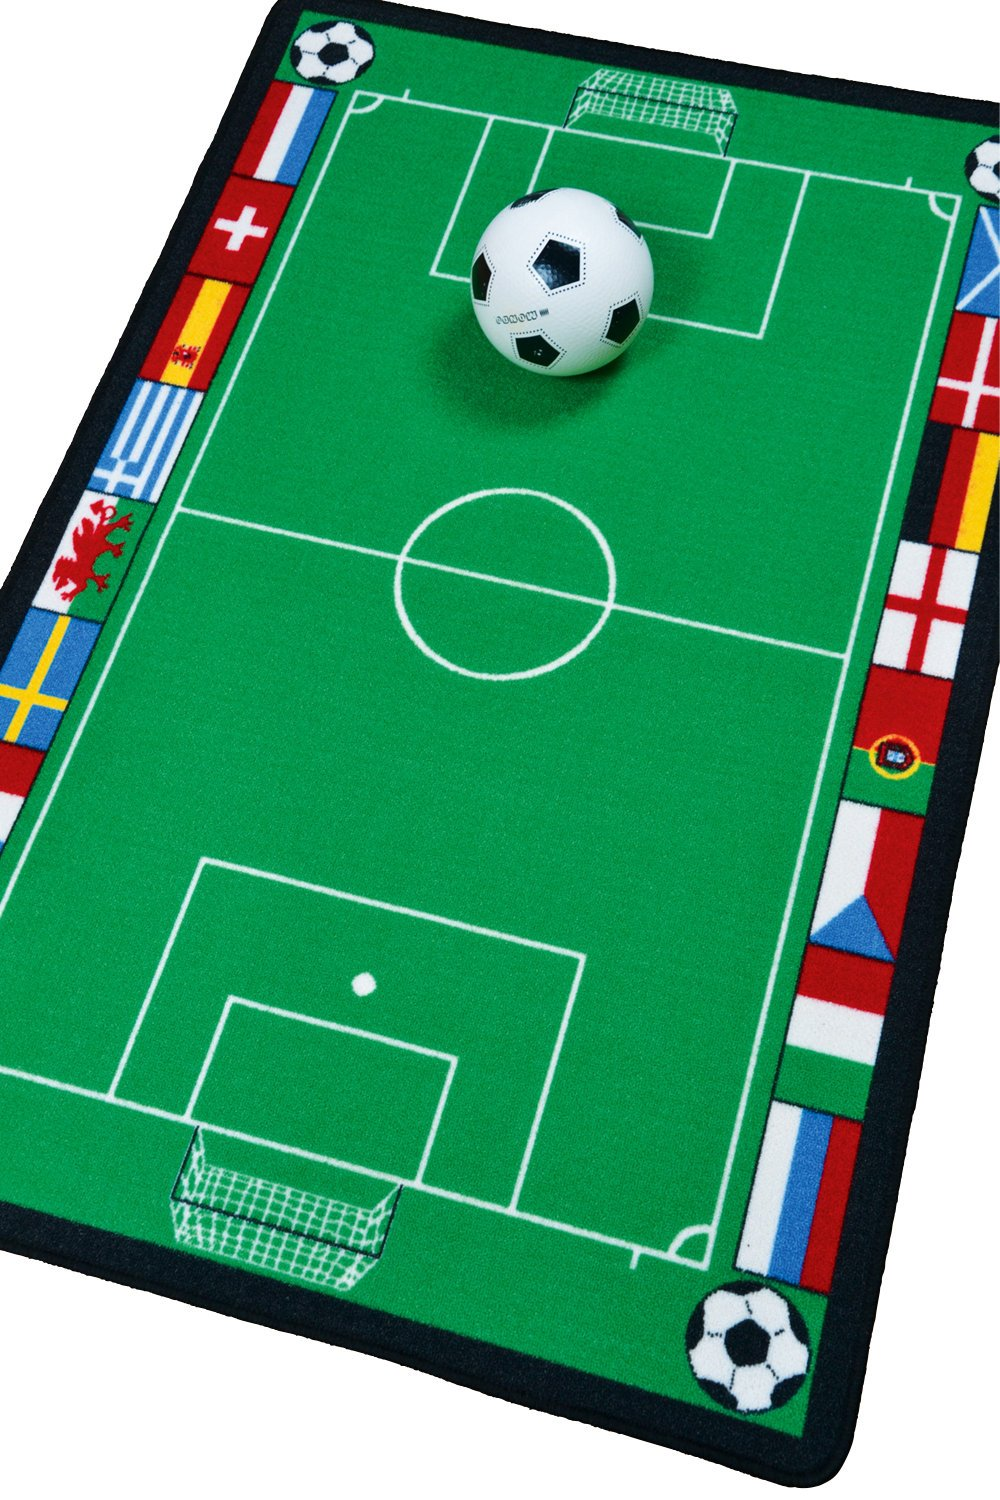 Childrens Bedroom Rugs Football Pitch Stadium Kids Mats 80x120cms FREE SHIPPING Vogue Rugs